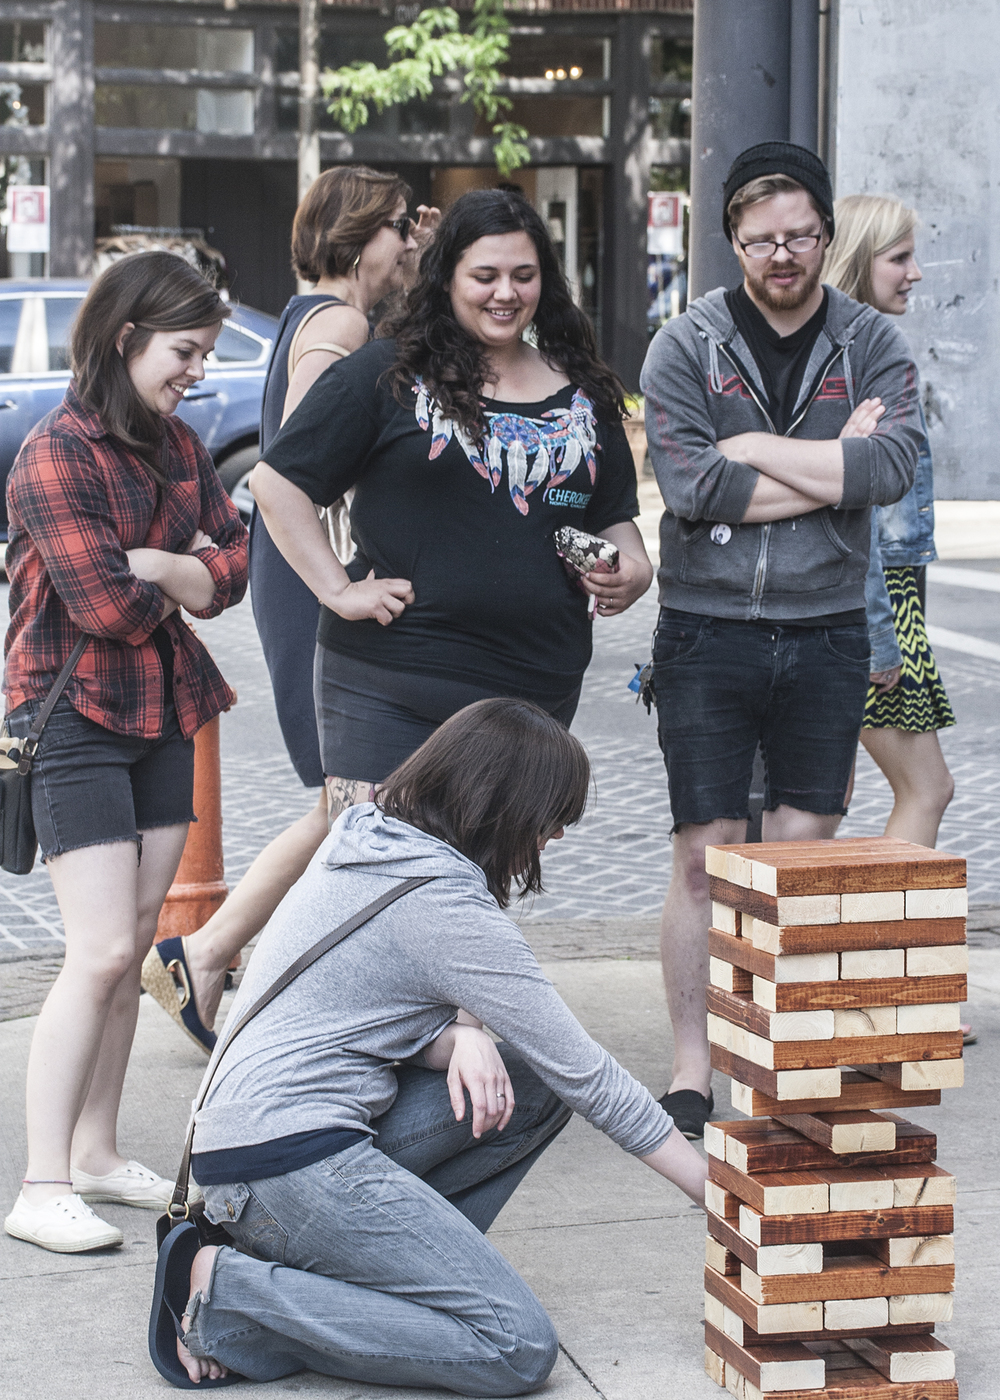 sidewalk jenga by kingmakers board game parlour.